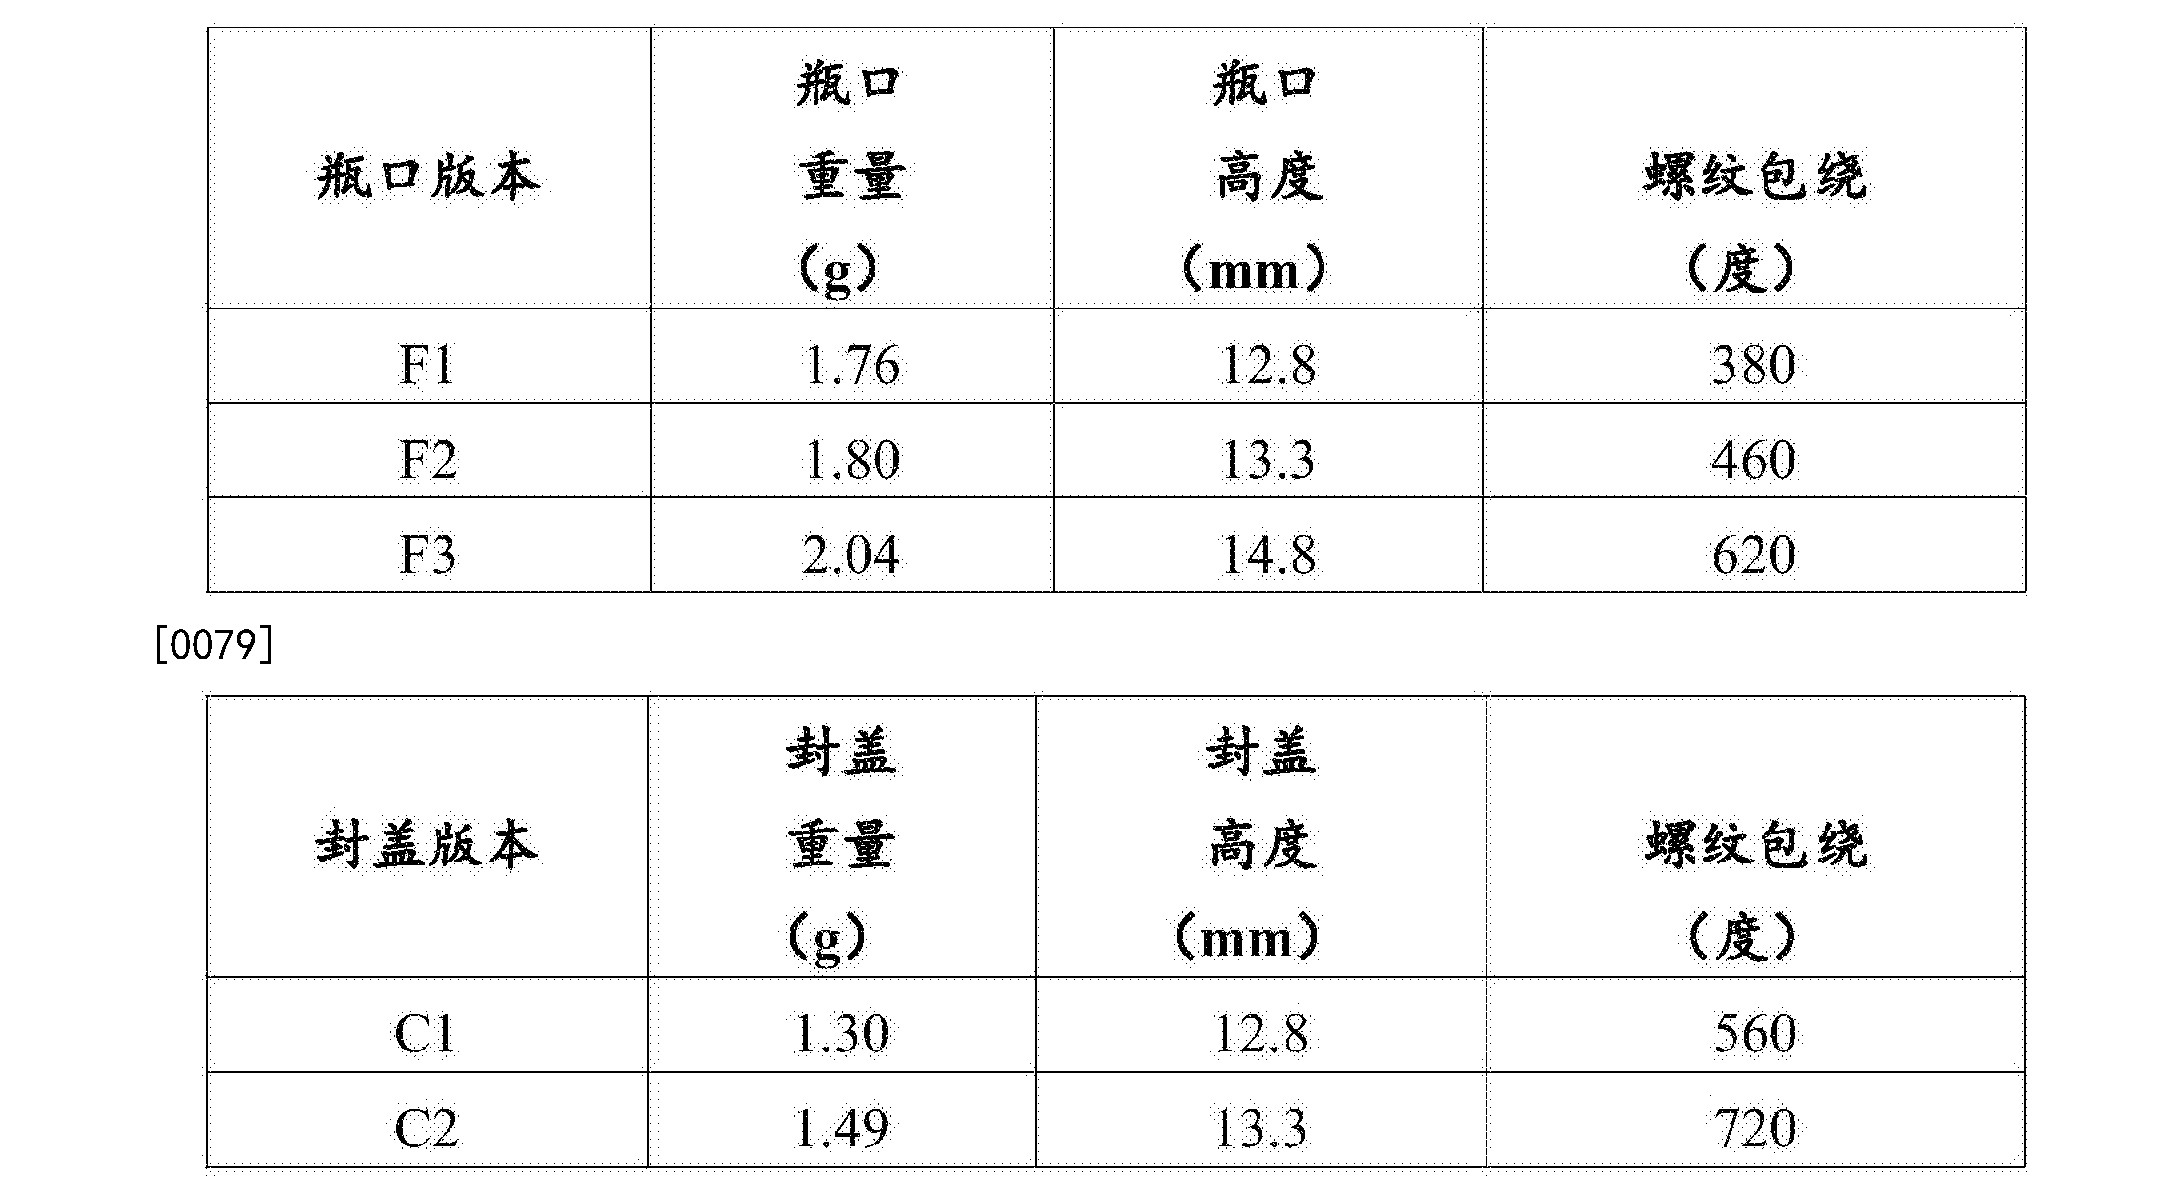 CN107249994A - Closure and finish for small carbonated